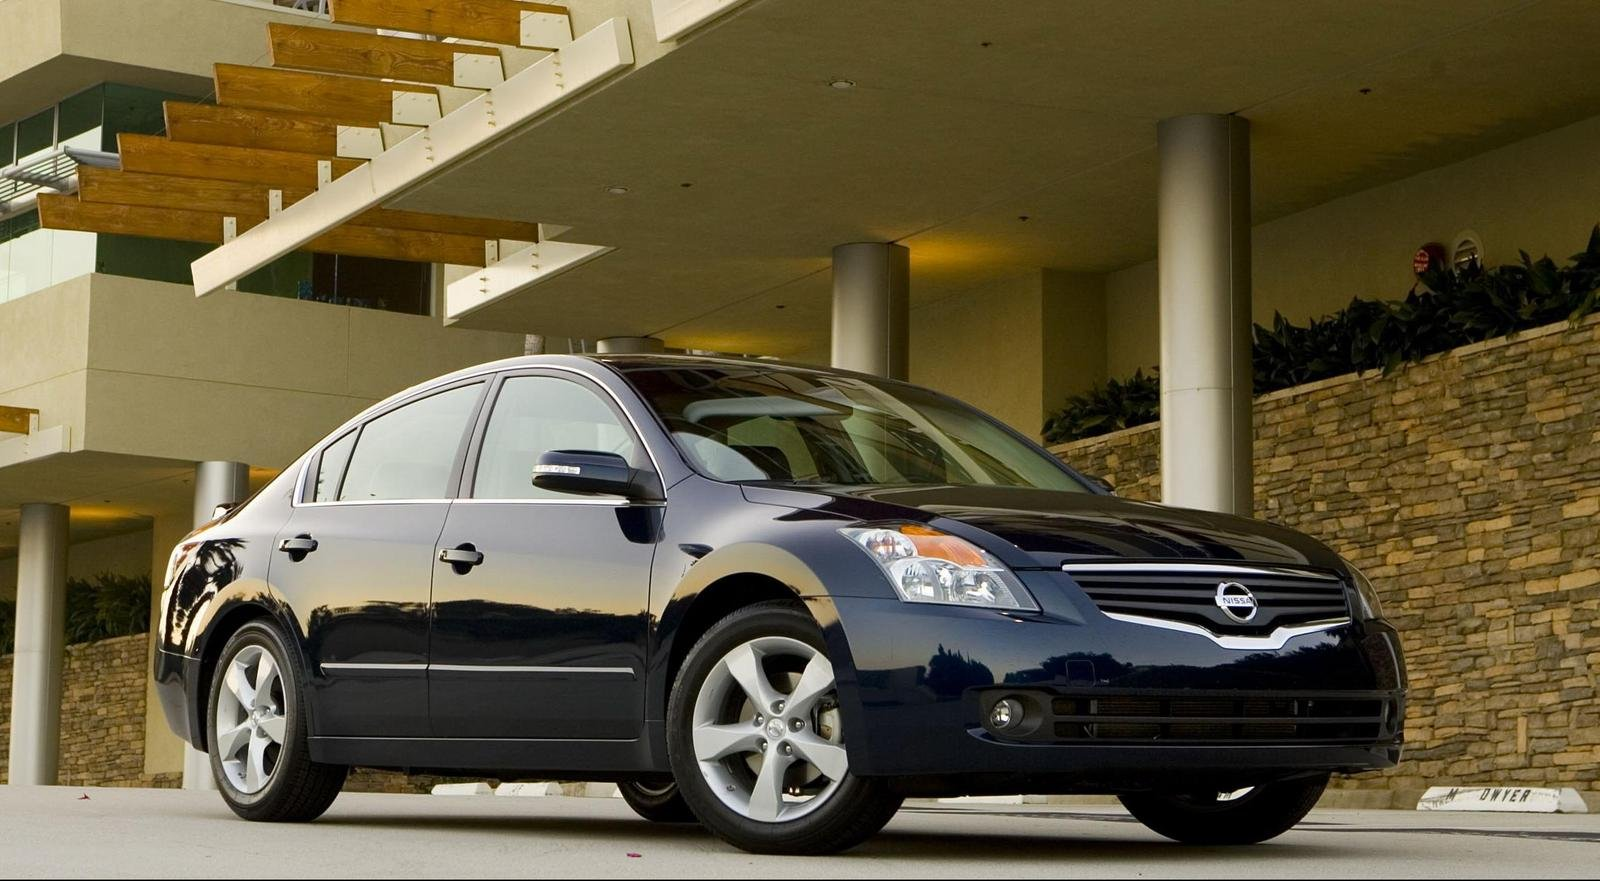 2008 nissan altima sedan pricing announced news top speed. Black Bedroom Furniture Sets. Home Design Ideas